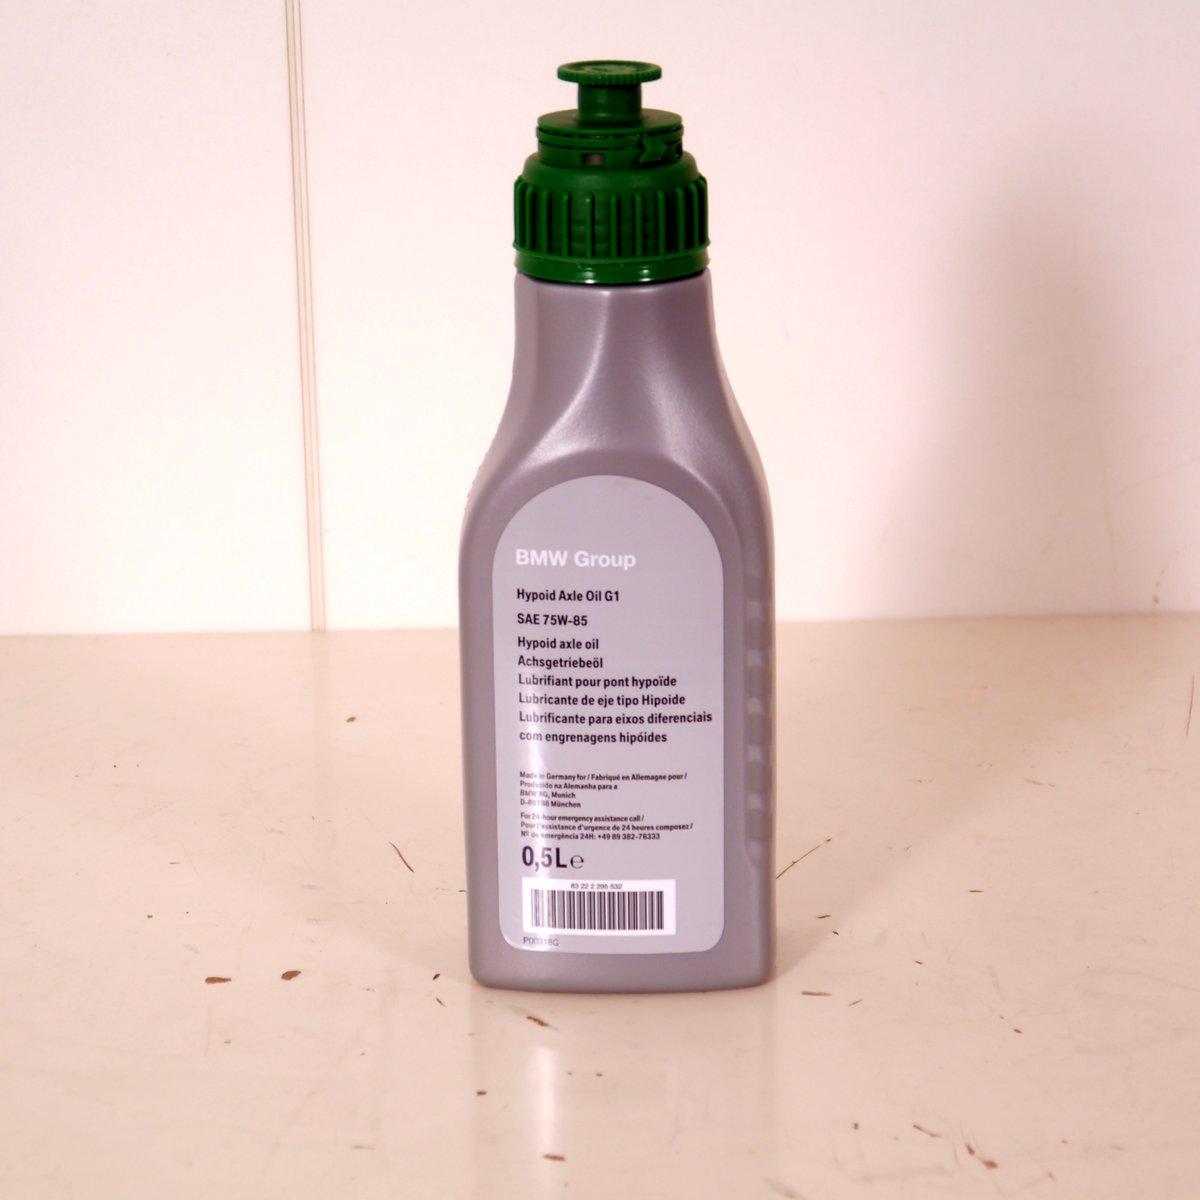 Original Bmw Hypoid Axle Oil G1 Hinterachs 246 L Sae 75w 85